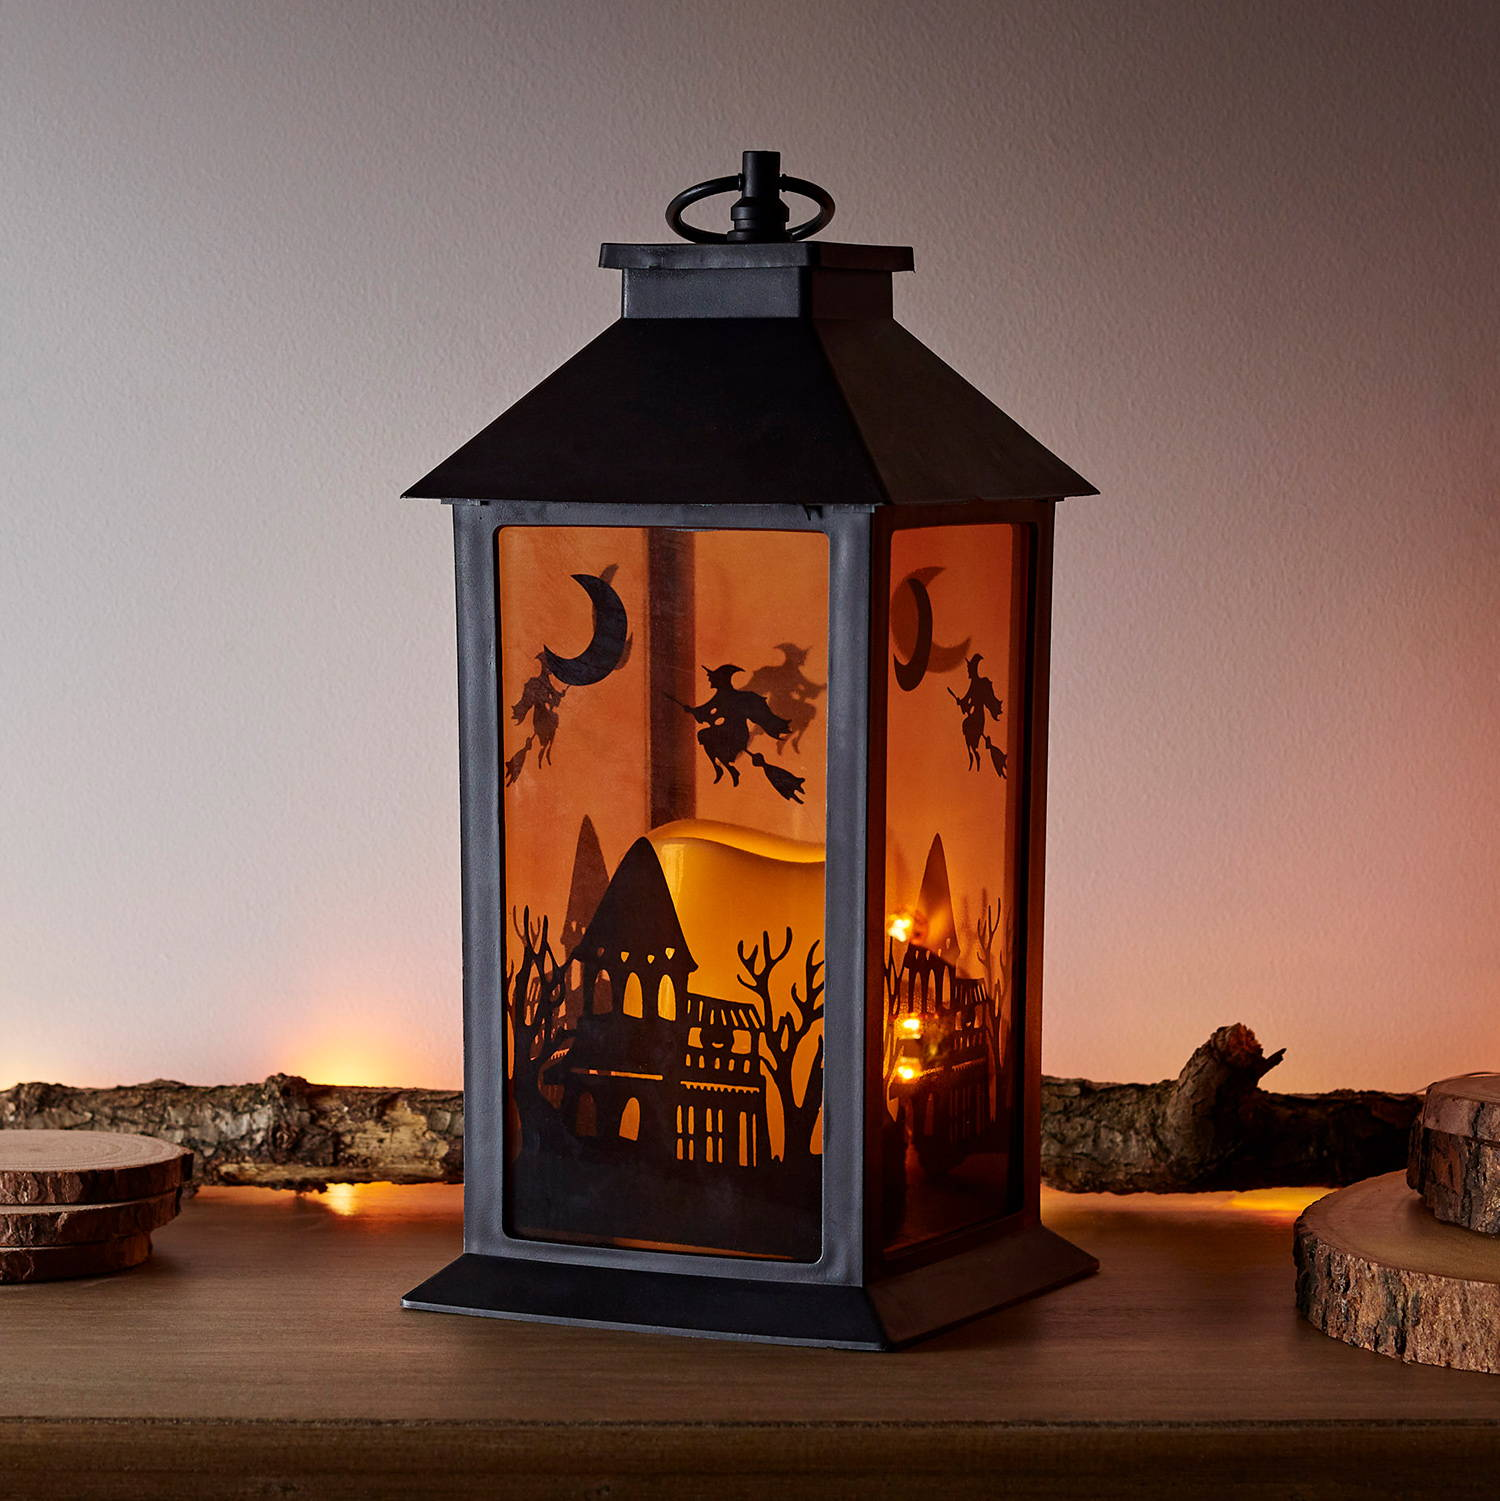 Outdoor halloween lantern featuring an LED candles encased with a haunted house scene on the glass